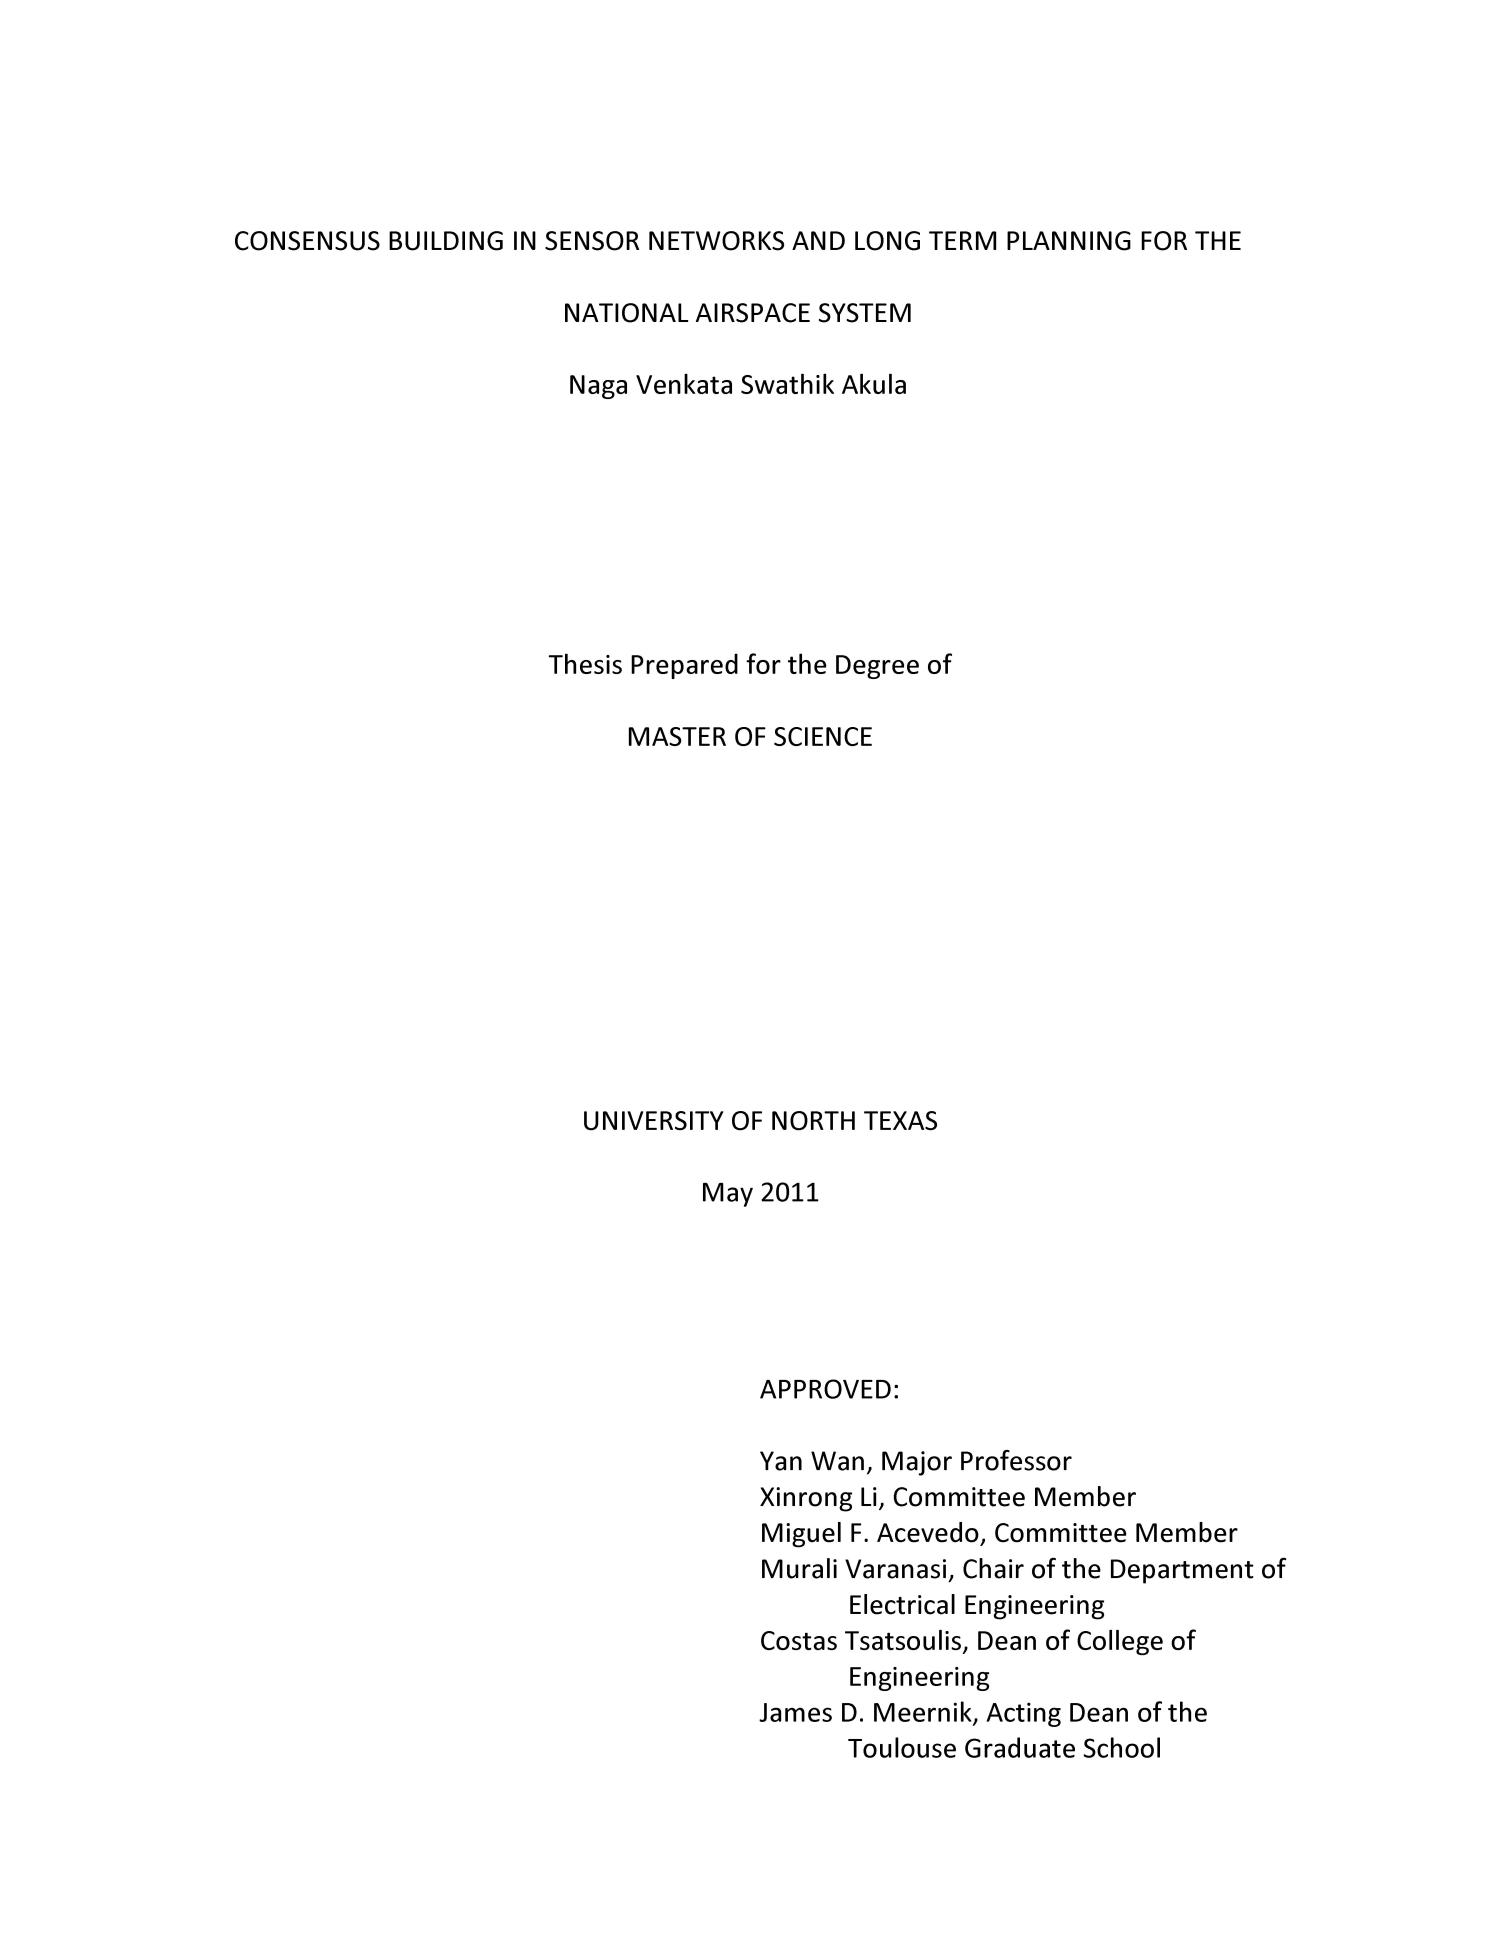 Consensus Building in Sensor Networks and Long Term Planning for the National Airspace System                                                                                                      Title Page